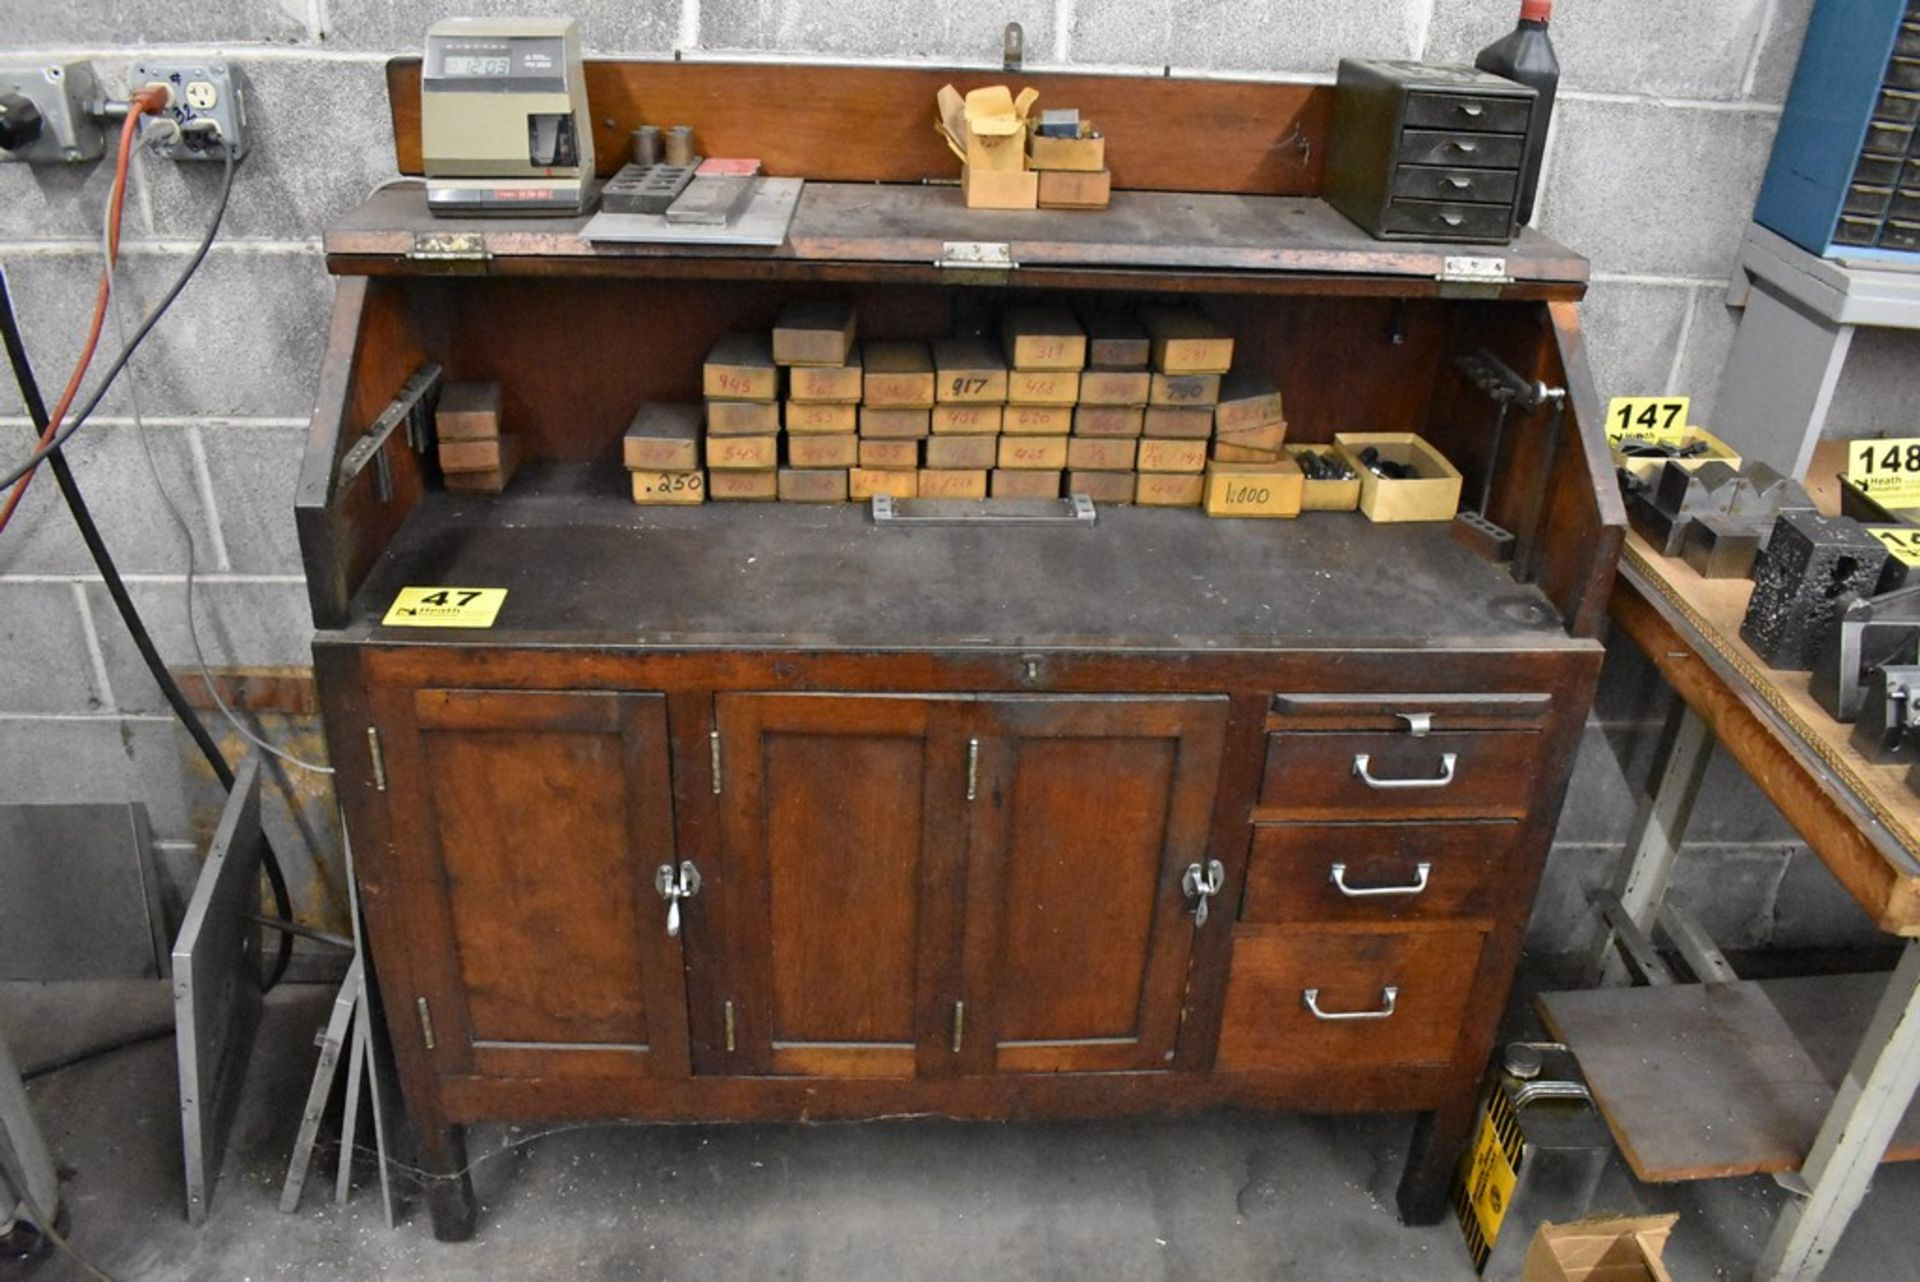 MOORE VINTAGE TOOLMAKERS CABINET WITH CONTENTS - Image 2 of 2